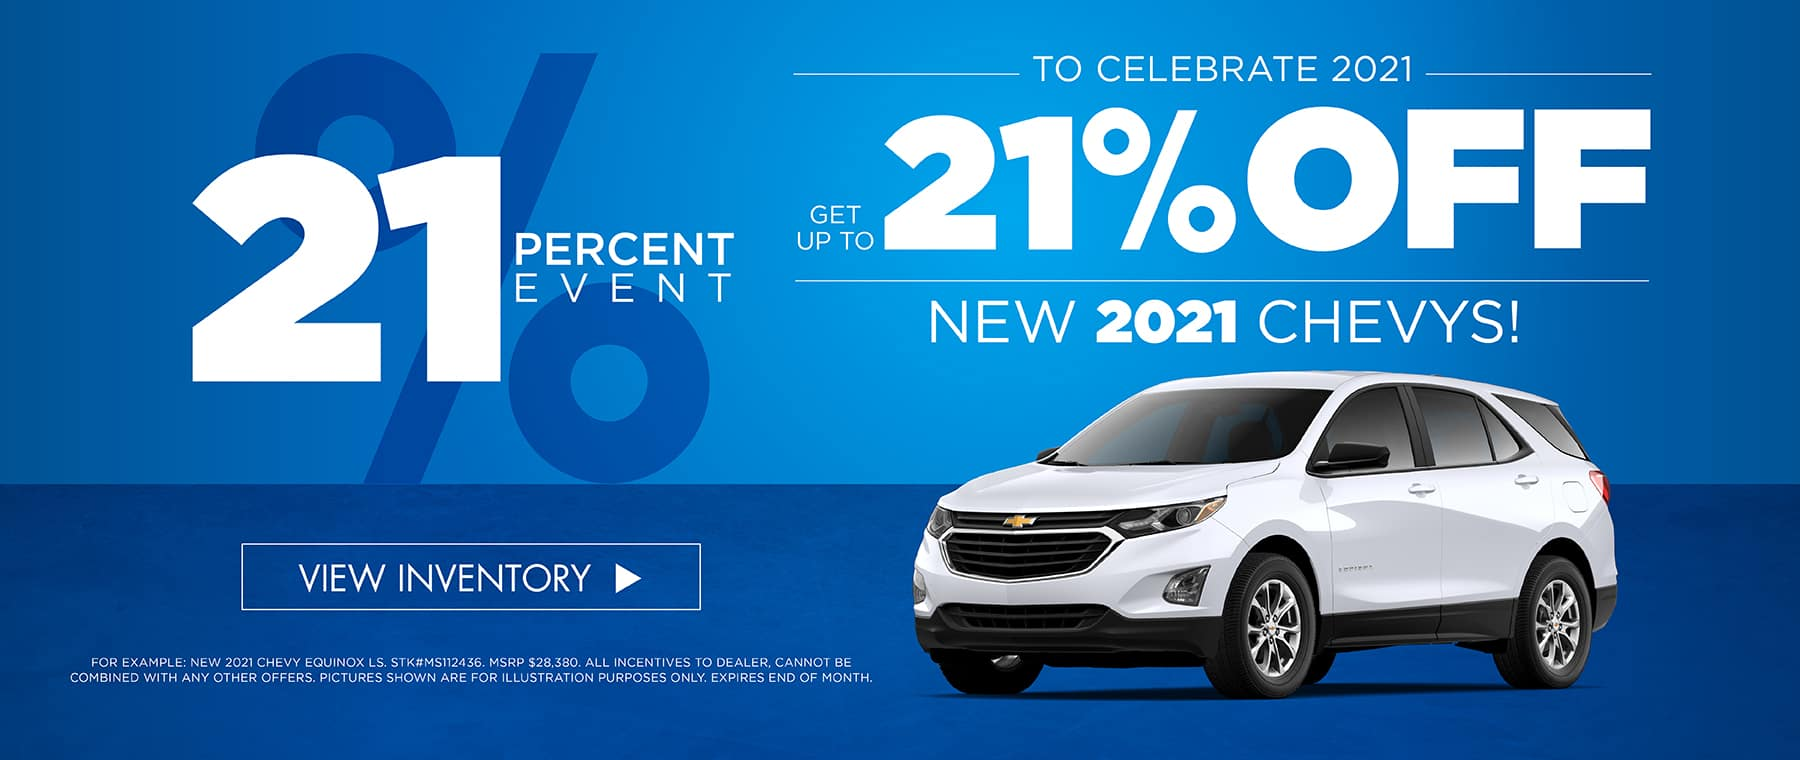 To celebrate 2021 get 21% OFF